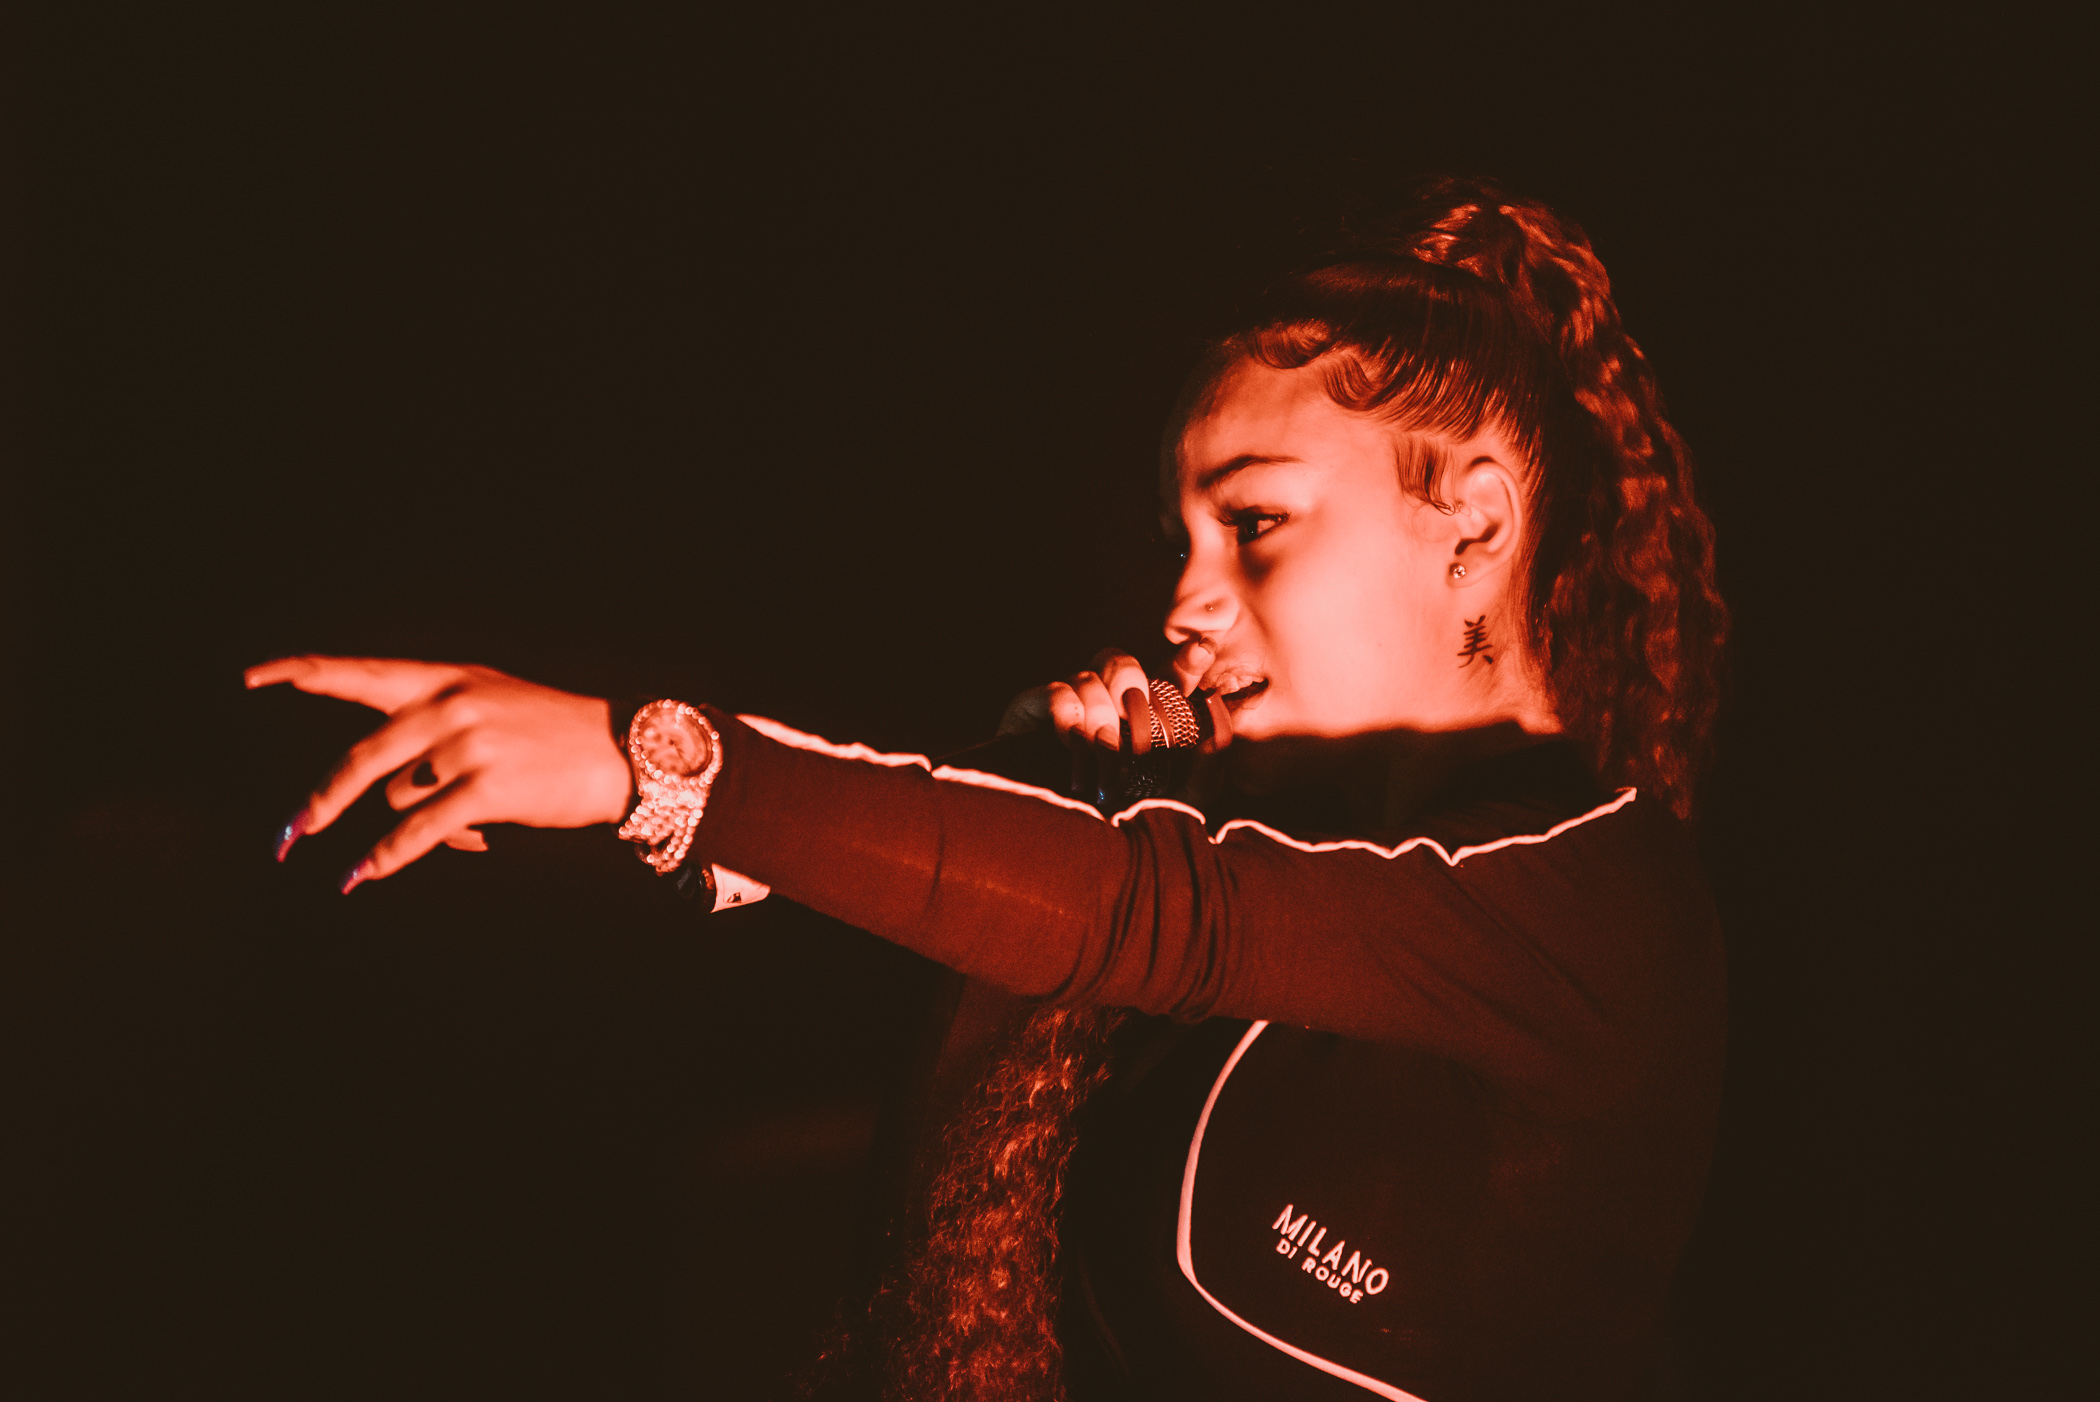 1_Bhad_Bhabie-VENUE-Timothy_Nguyen-20190510 (7 of 45).JPG